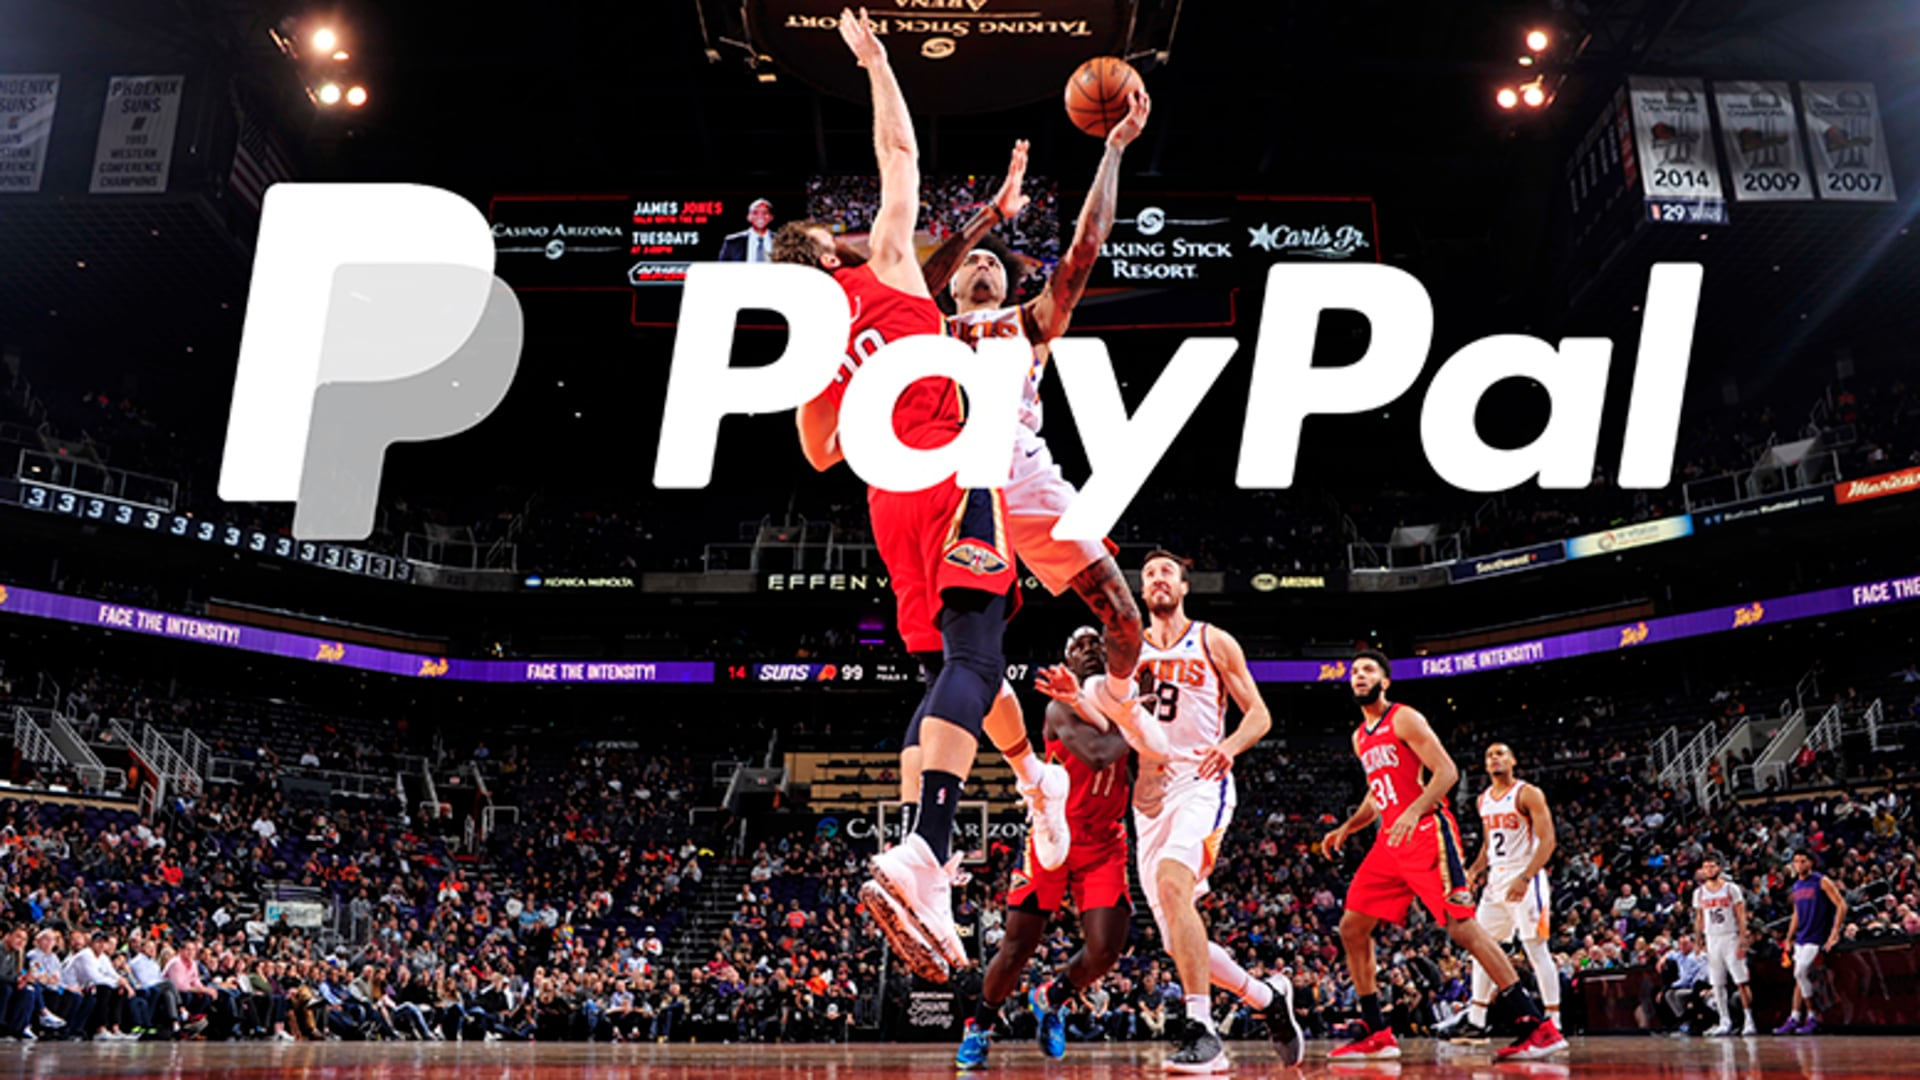 Suns vs. Pelicans PayPal Highlights 2019-20